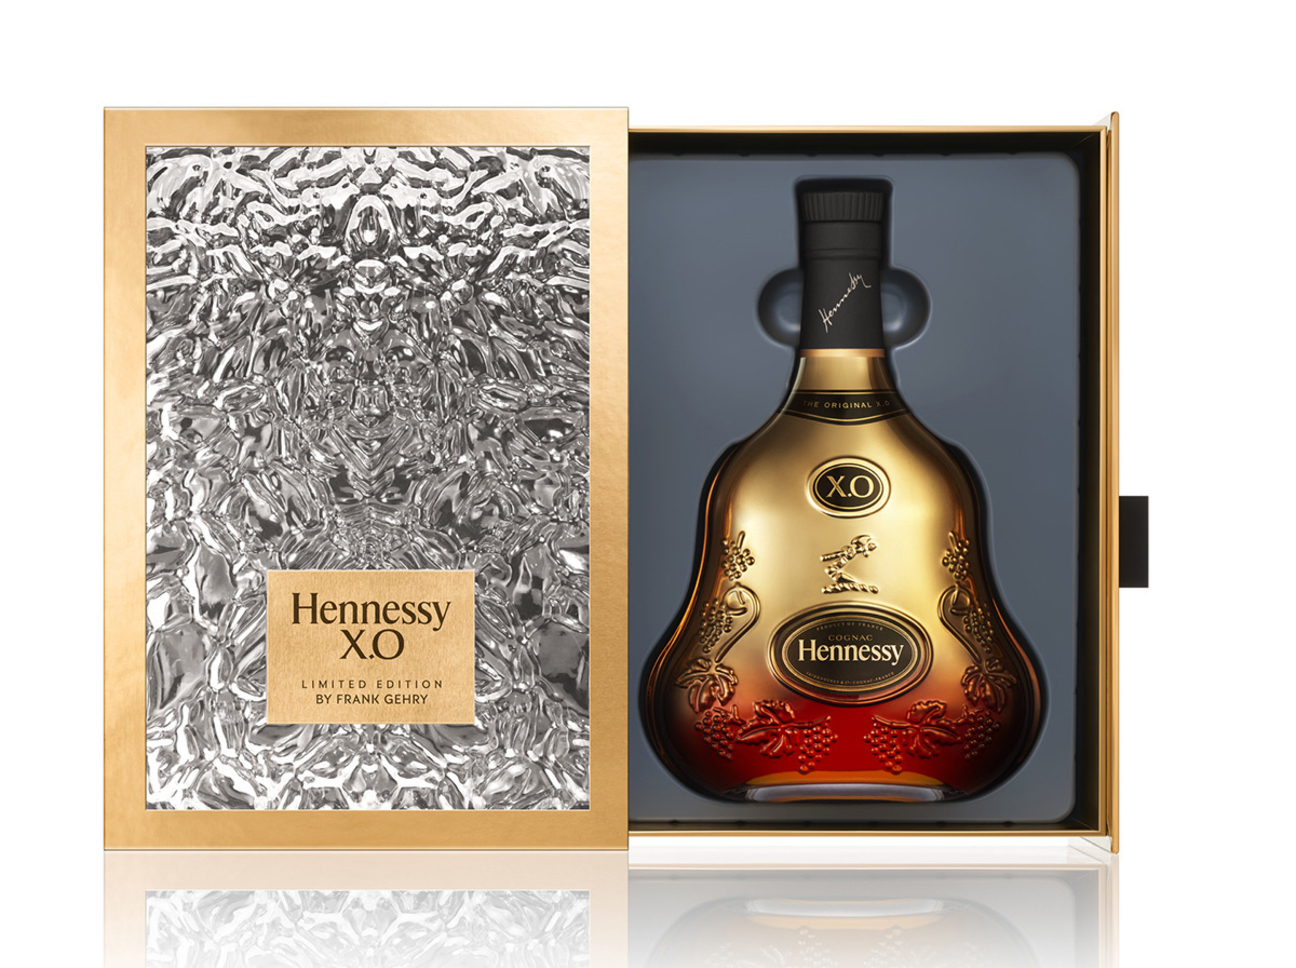 Hennessy X.O Frank Gehry Limited Edition Giftbox